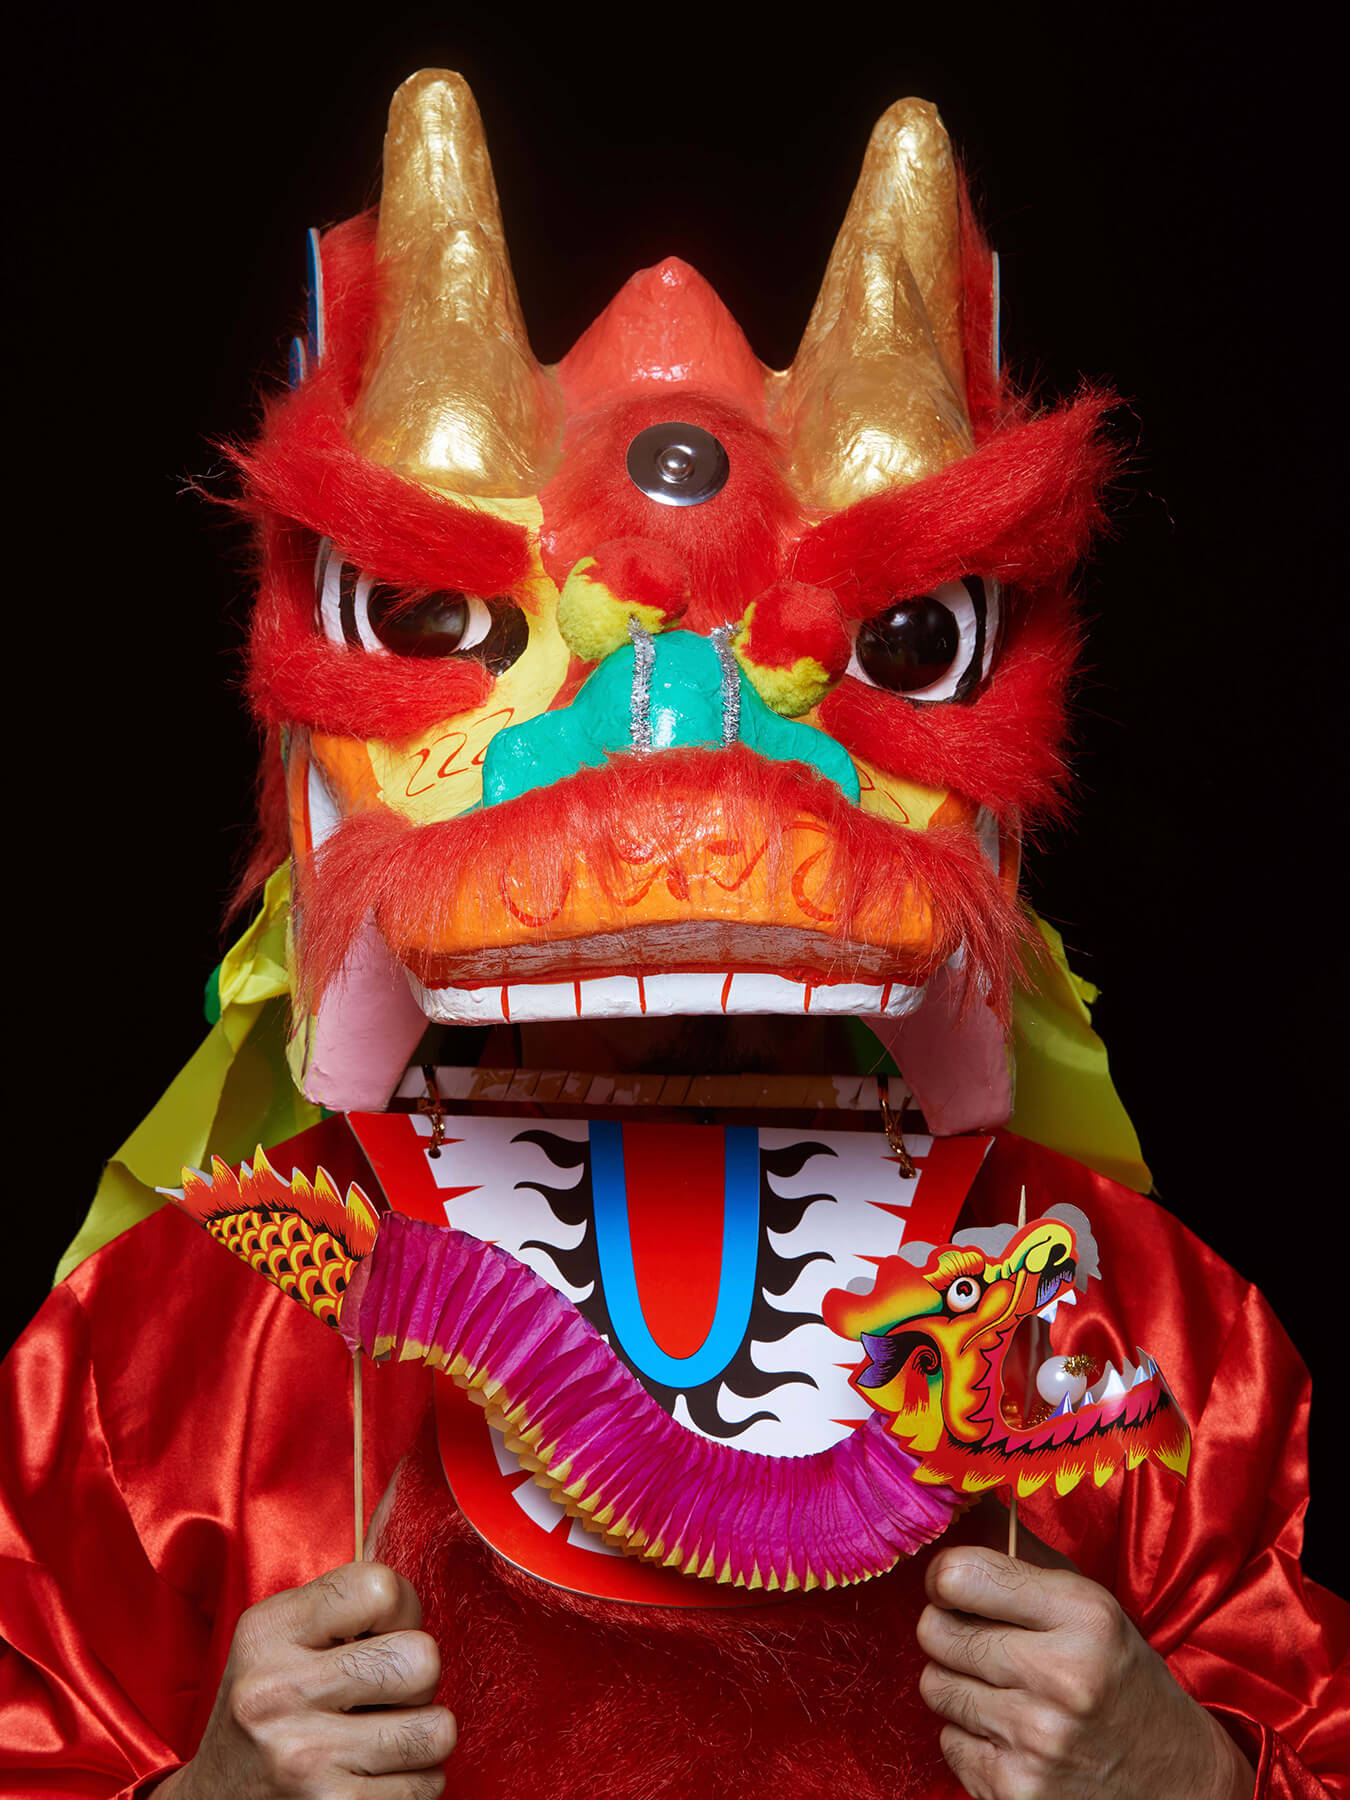 17 Feb 2018 Derong is wearing a Chinese dragon head costume